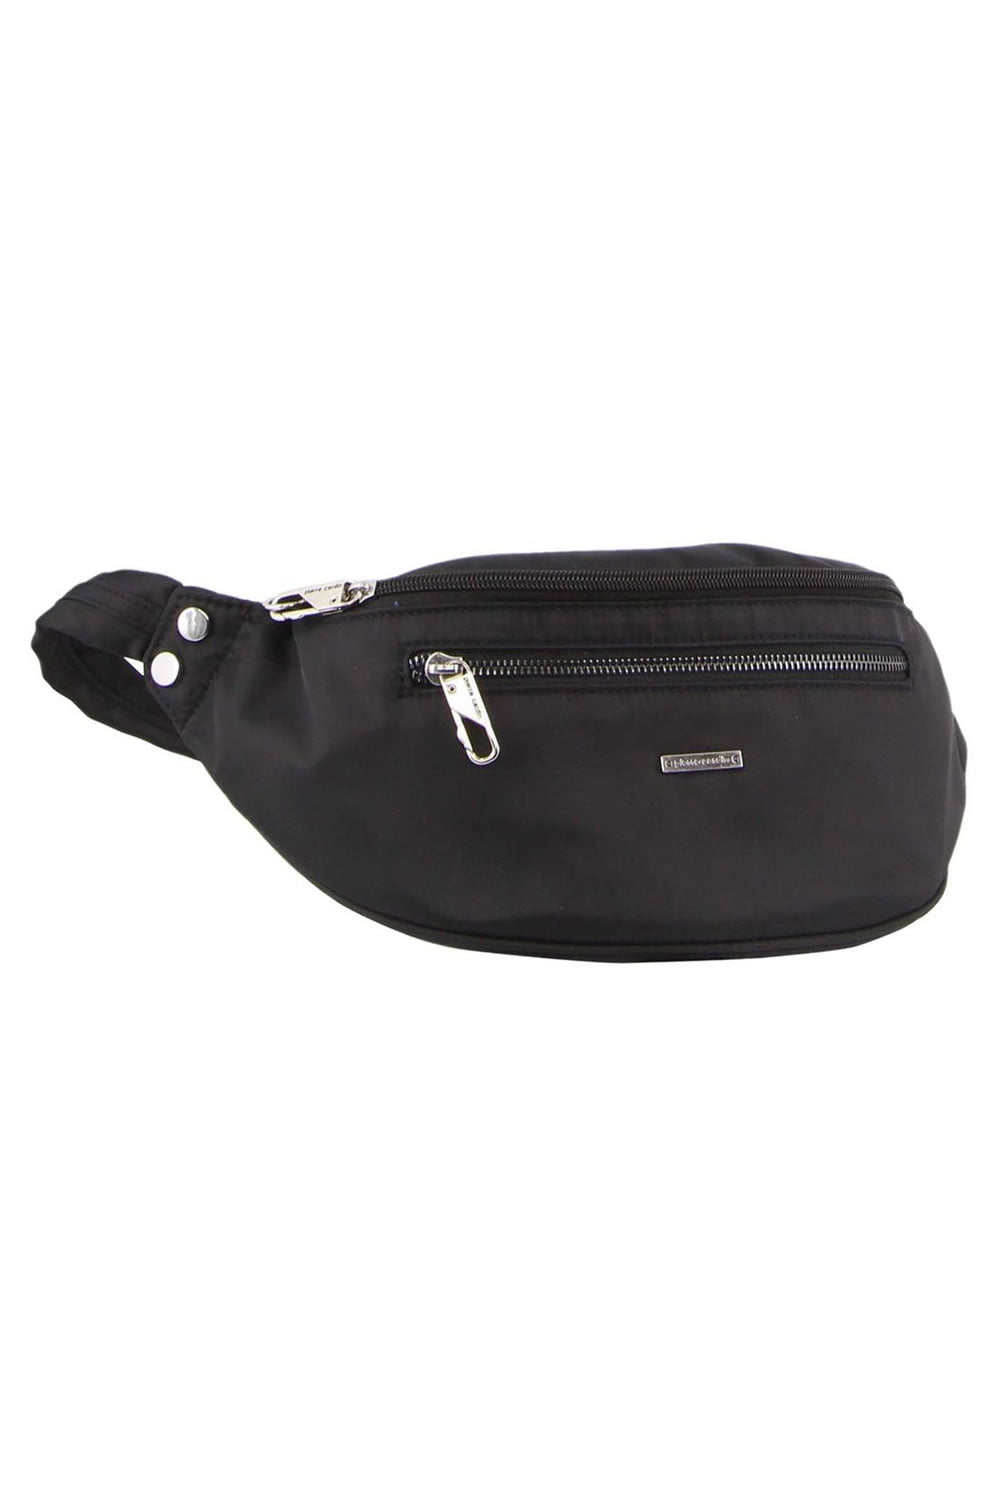 Pierre Cardin Nylon Bag